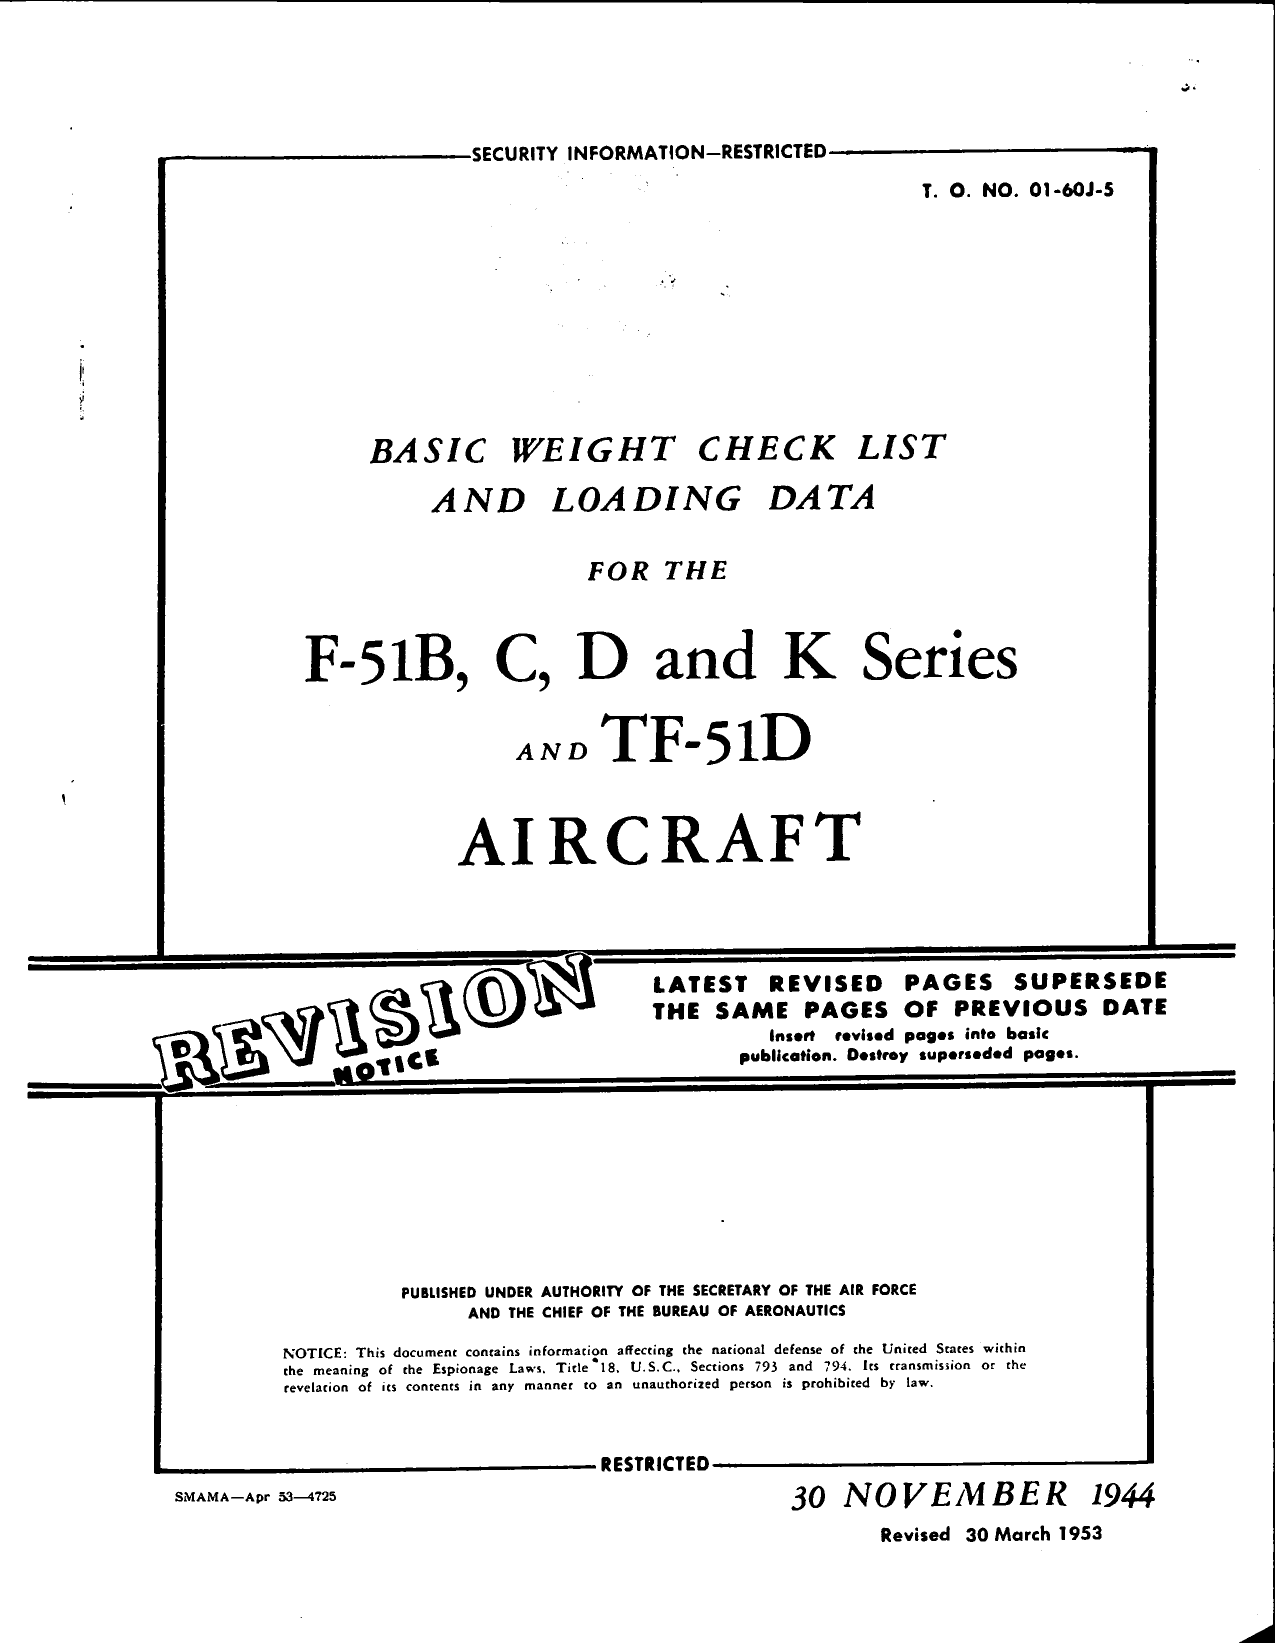 Sample page 1 from AirCorps Library document: Basic Weight Check List & Data for the F-51 Series and TF-51D